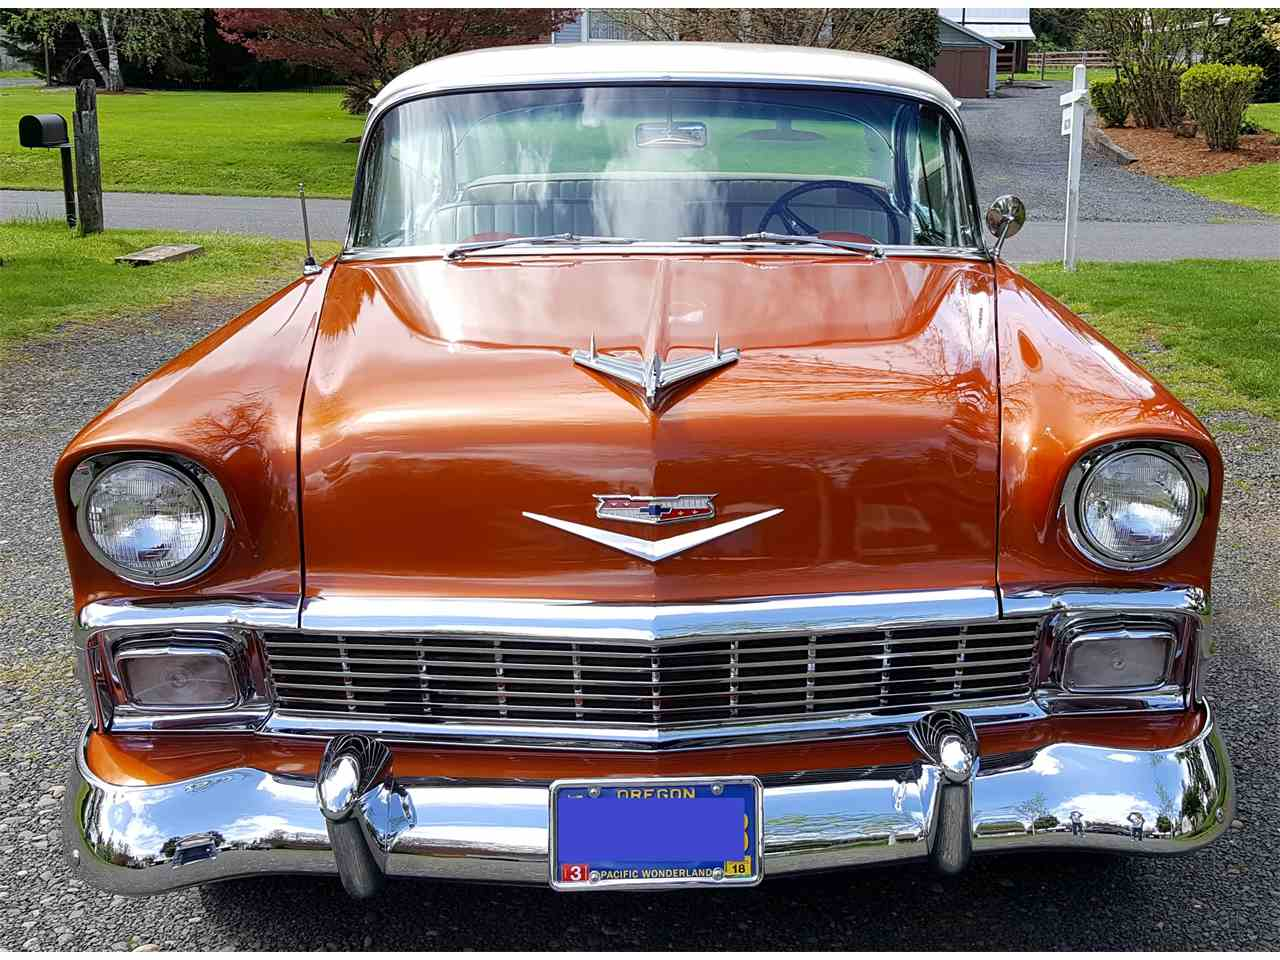 1956 chevrolet bel air for sale classic car liquidators - 1956 Chevrolet Bel Air For Sale Cc 995206